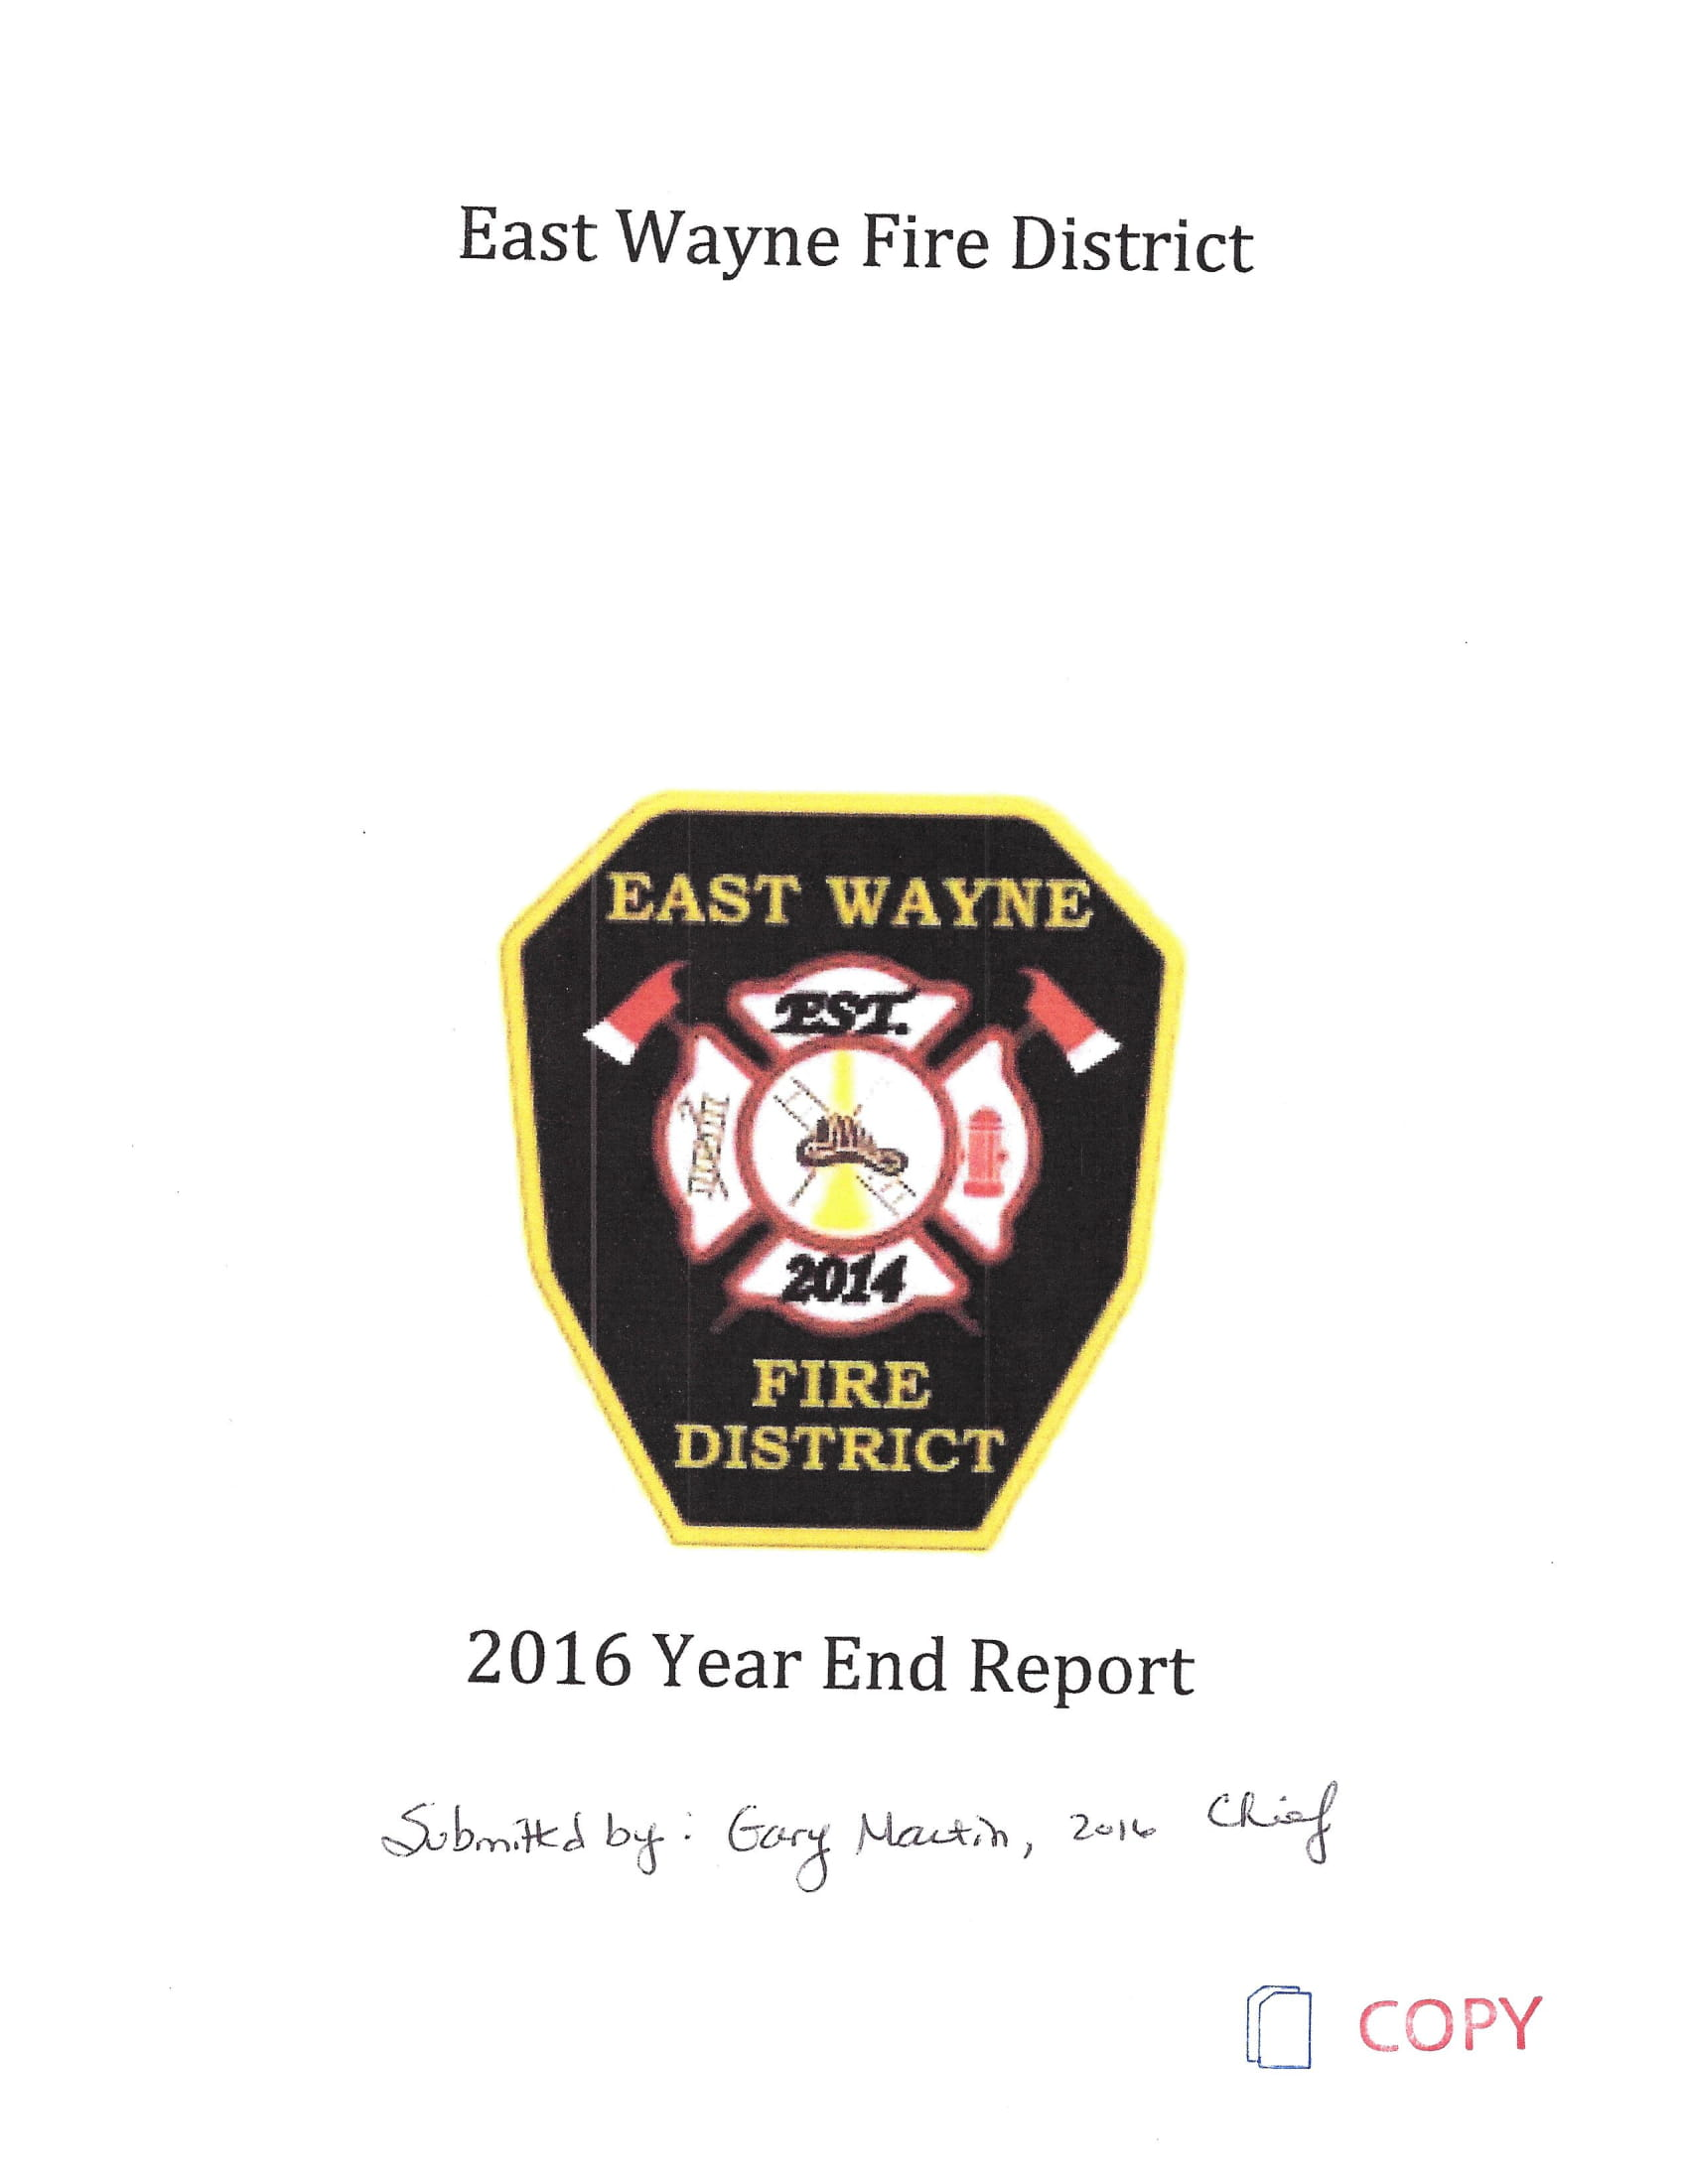 Fire District Year End Report Example